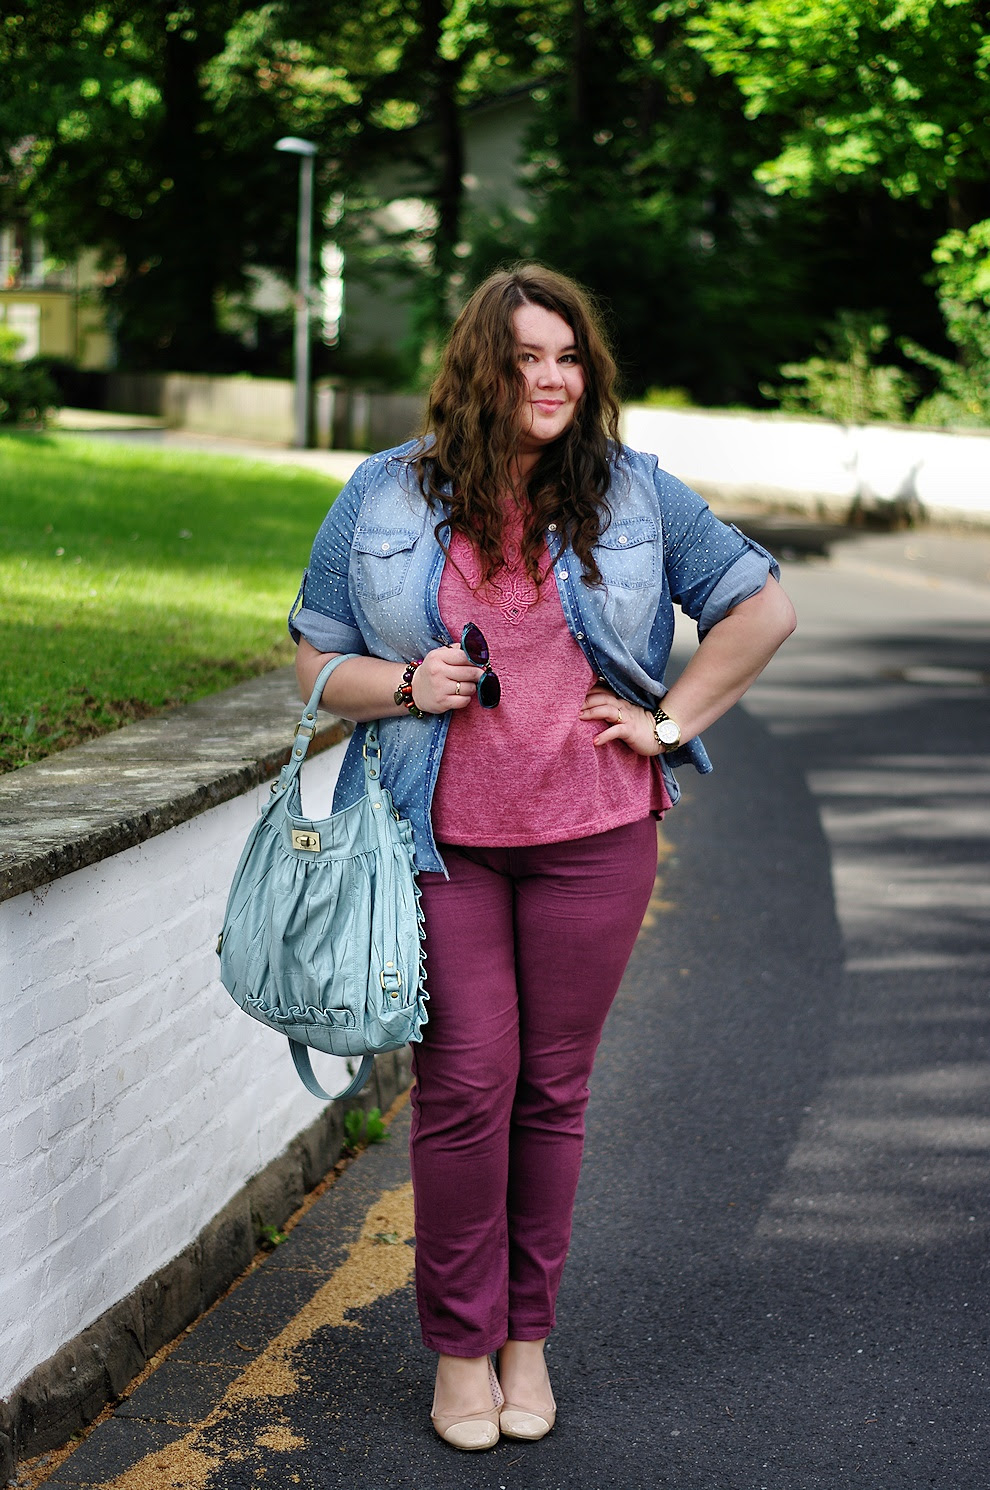 Große Größen Plus Size Fashion Blog Firmoo sunglasses dotted shirt new look inspire c&a deichmann nude ballerinas nkd fiorelli bag